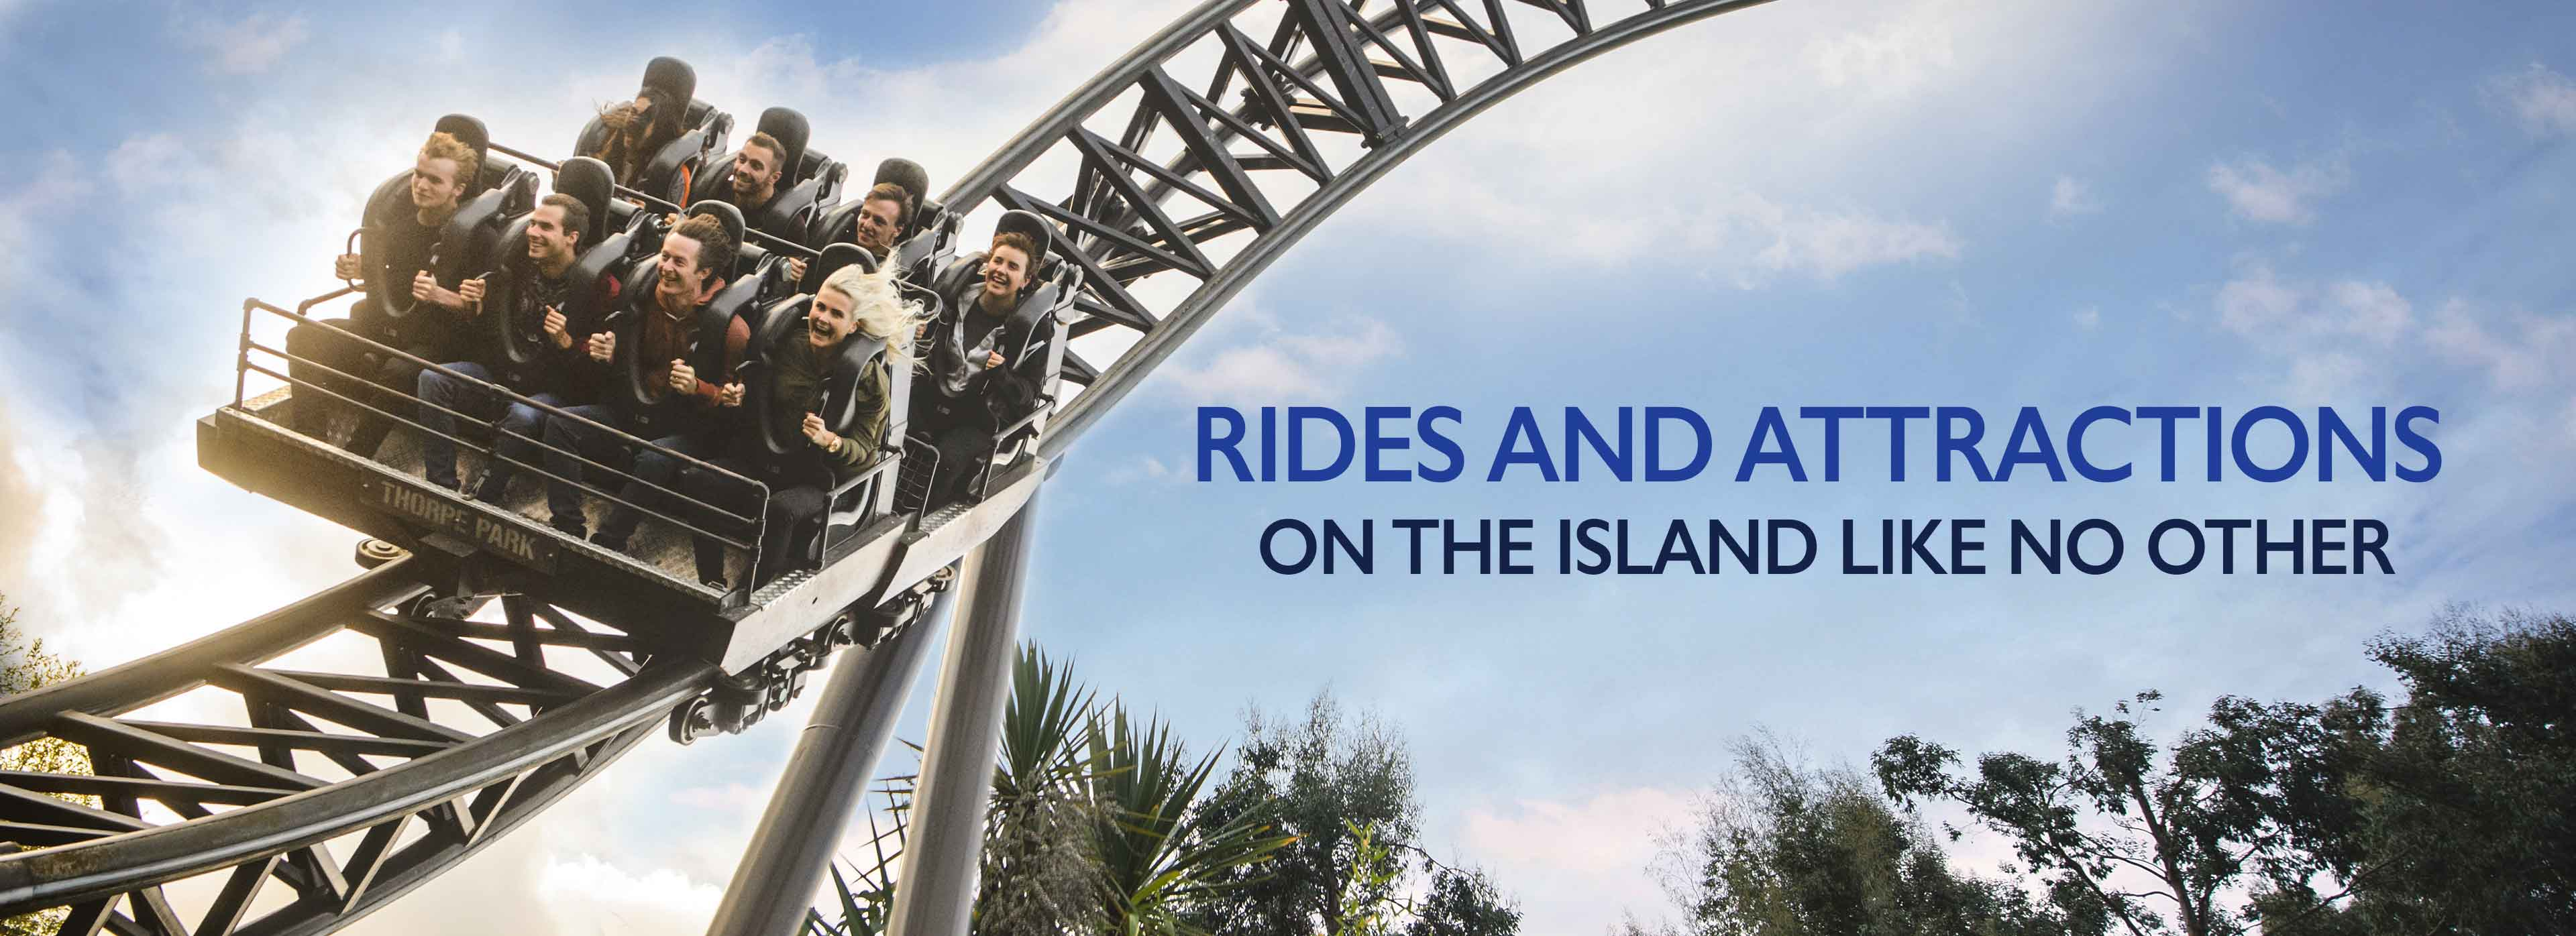 Thorpe Park rides and attractions